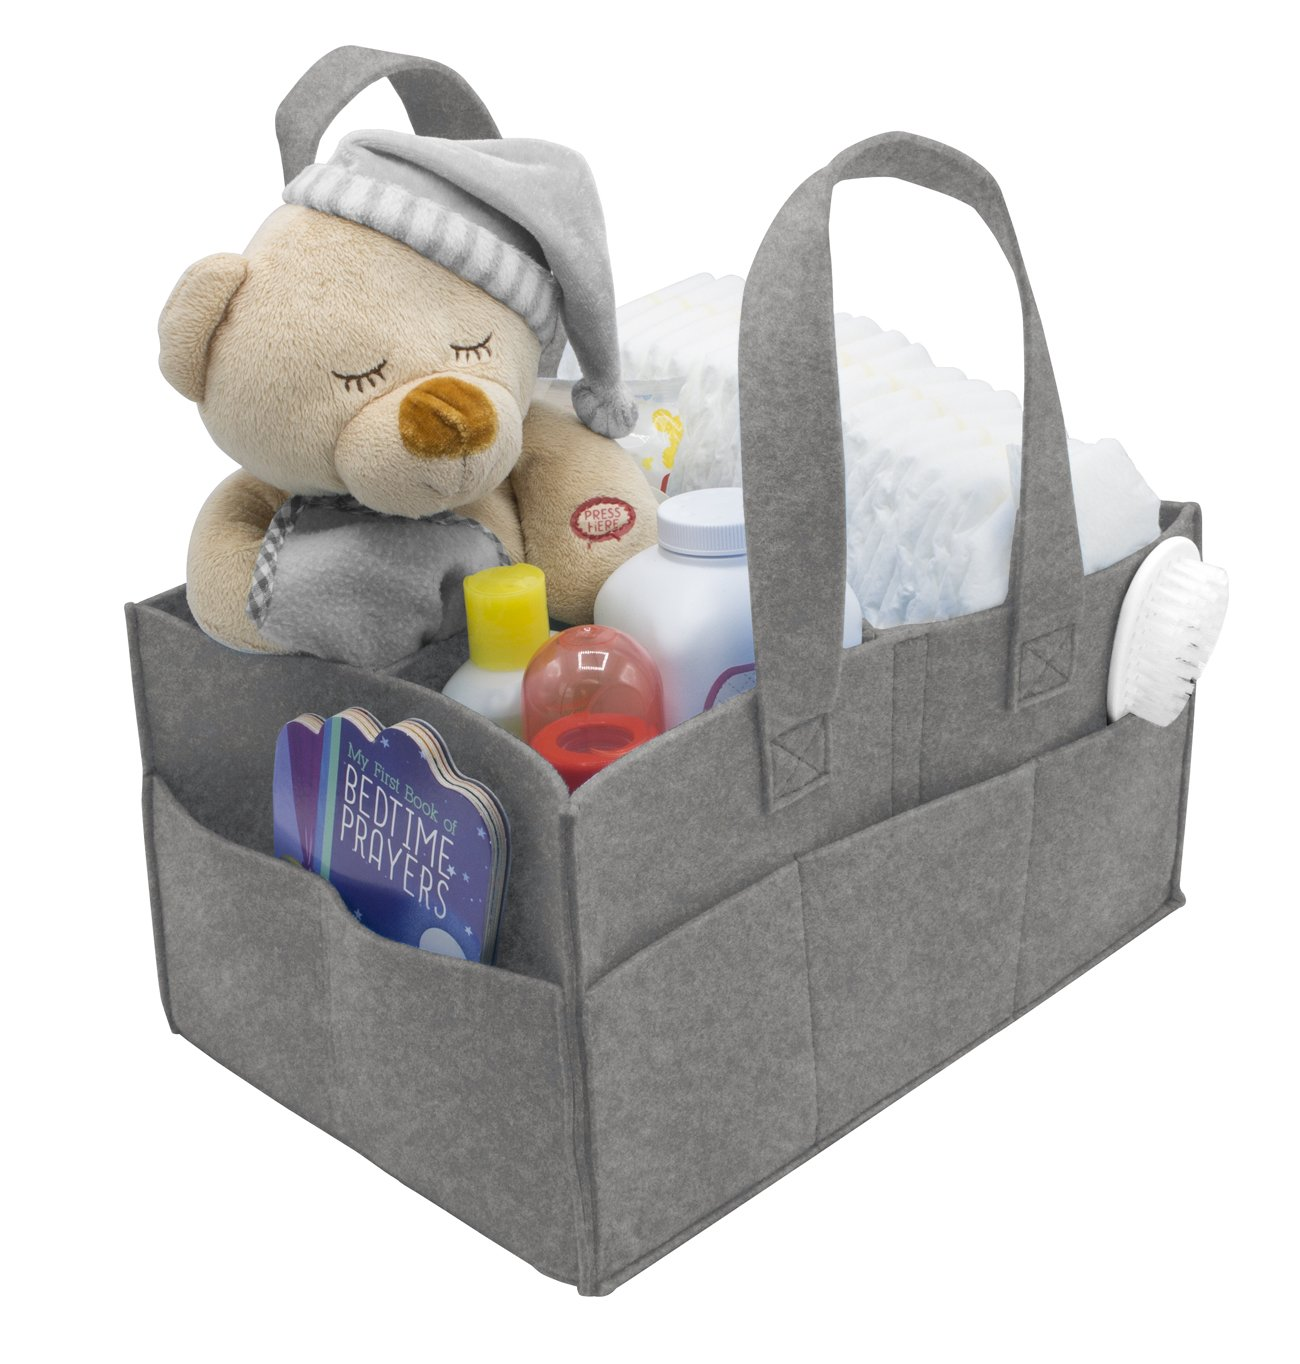 Sorbus Baby Diaper Caddy Organizer | Nursery Storage Bin for Diapers, Wipes & Toys | Portable Car Storage Basket | Changing Table Organizer | Great Baby Shower Gift Basket (Gray) STRG-CAFT-GRYA